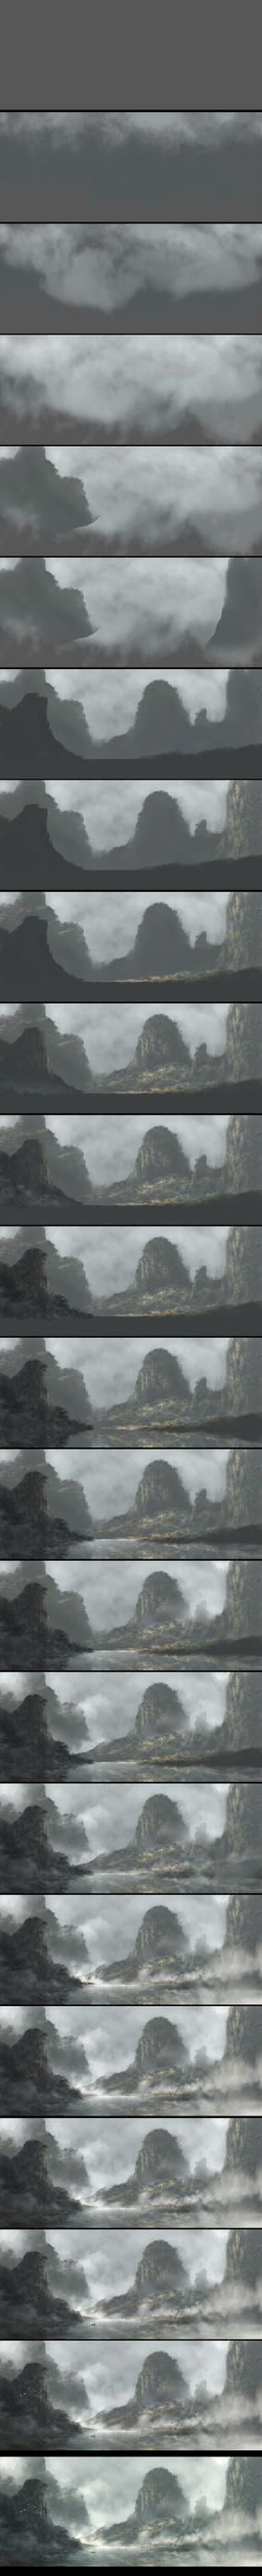 Chinese Mountains Steps by Juhupainting